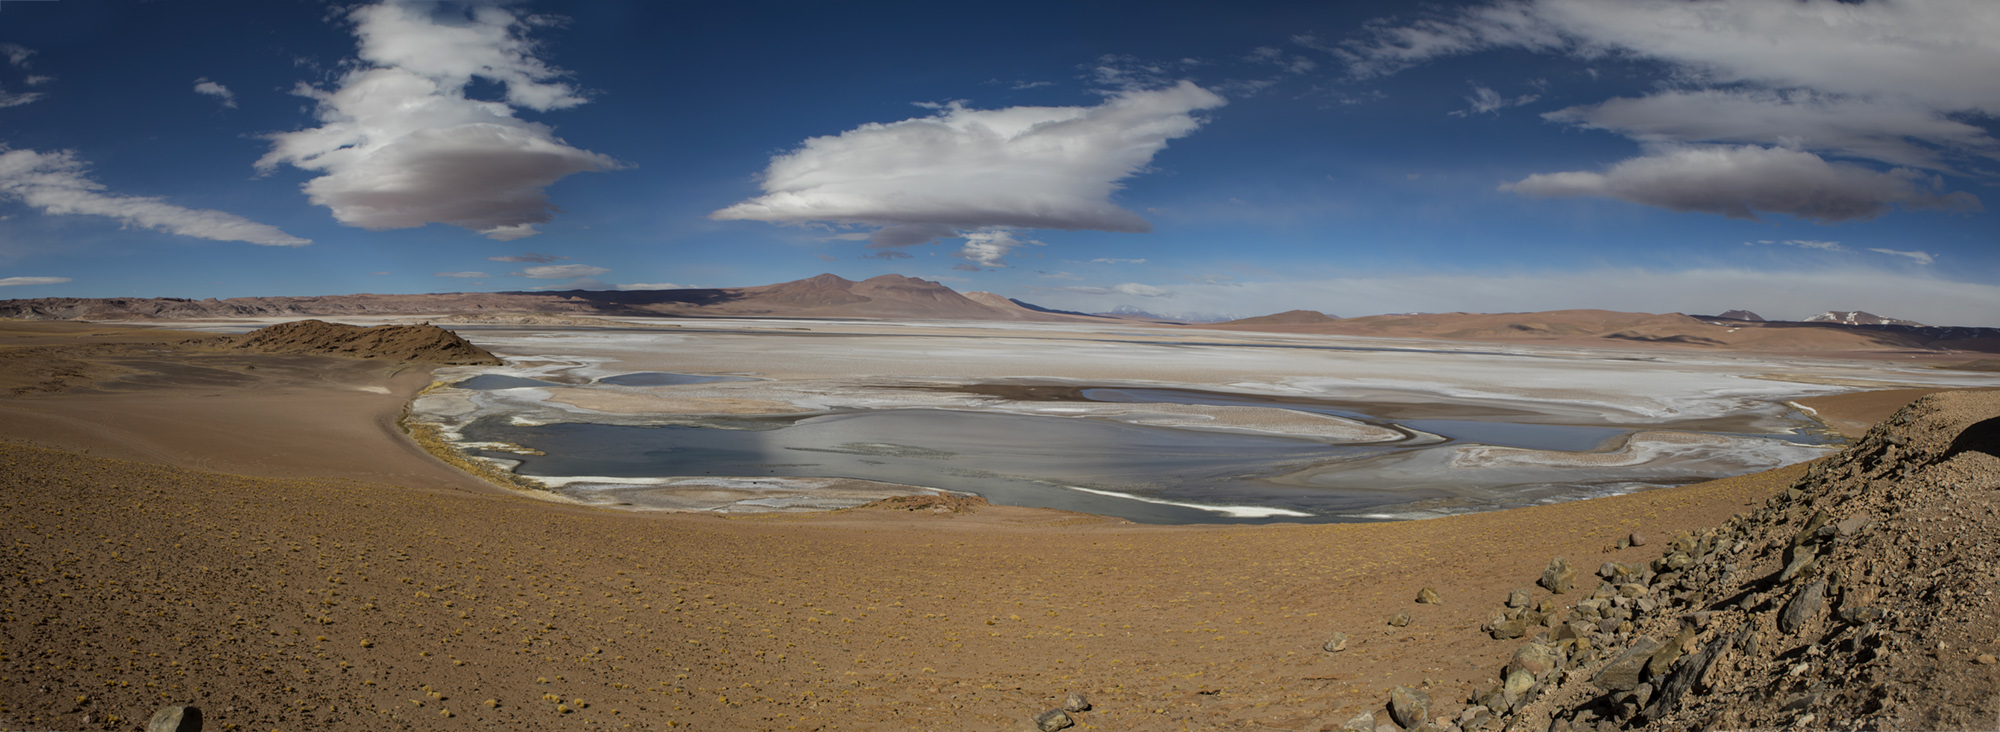 Chile, Chili, south america, andes, nature, bart coolen, photography